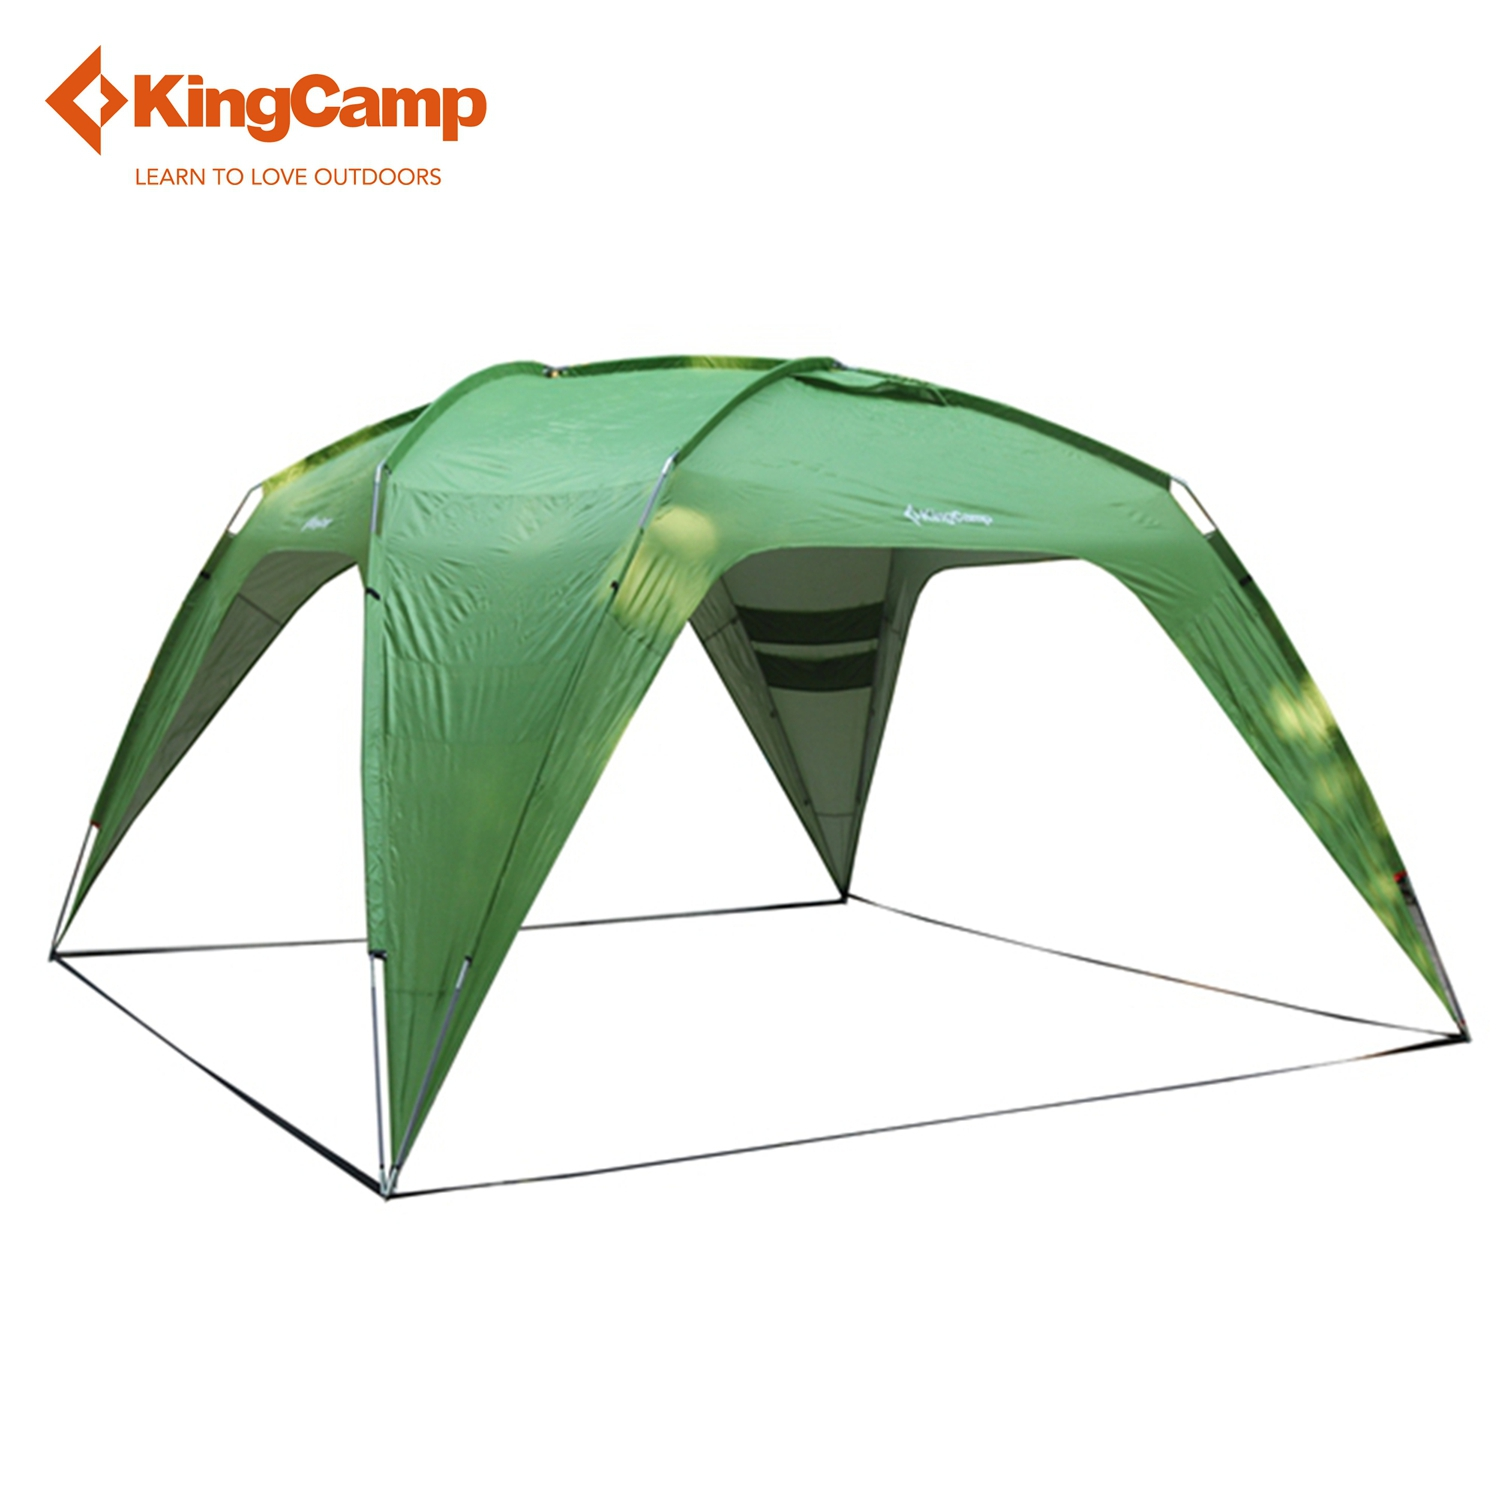 KingCamp Camping Equipment Beach Tent Awning UV Protection Fair Car Sun Shelter For Outdoor Picnic Hiking Trekking In From Sports